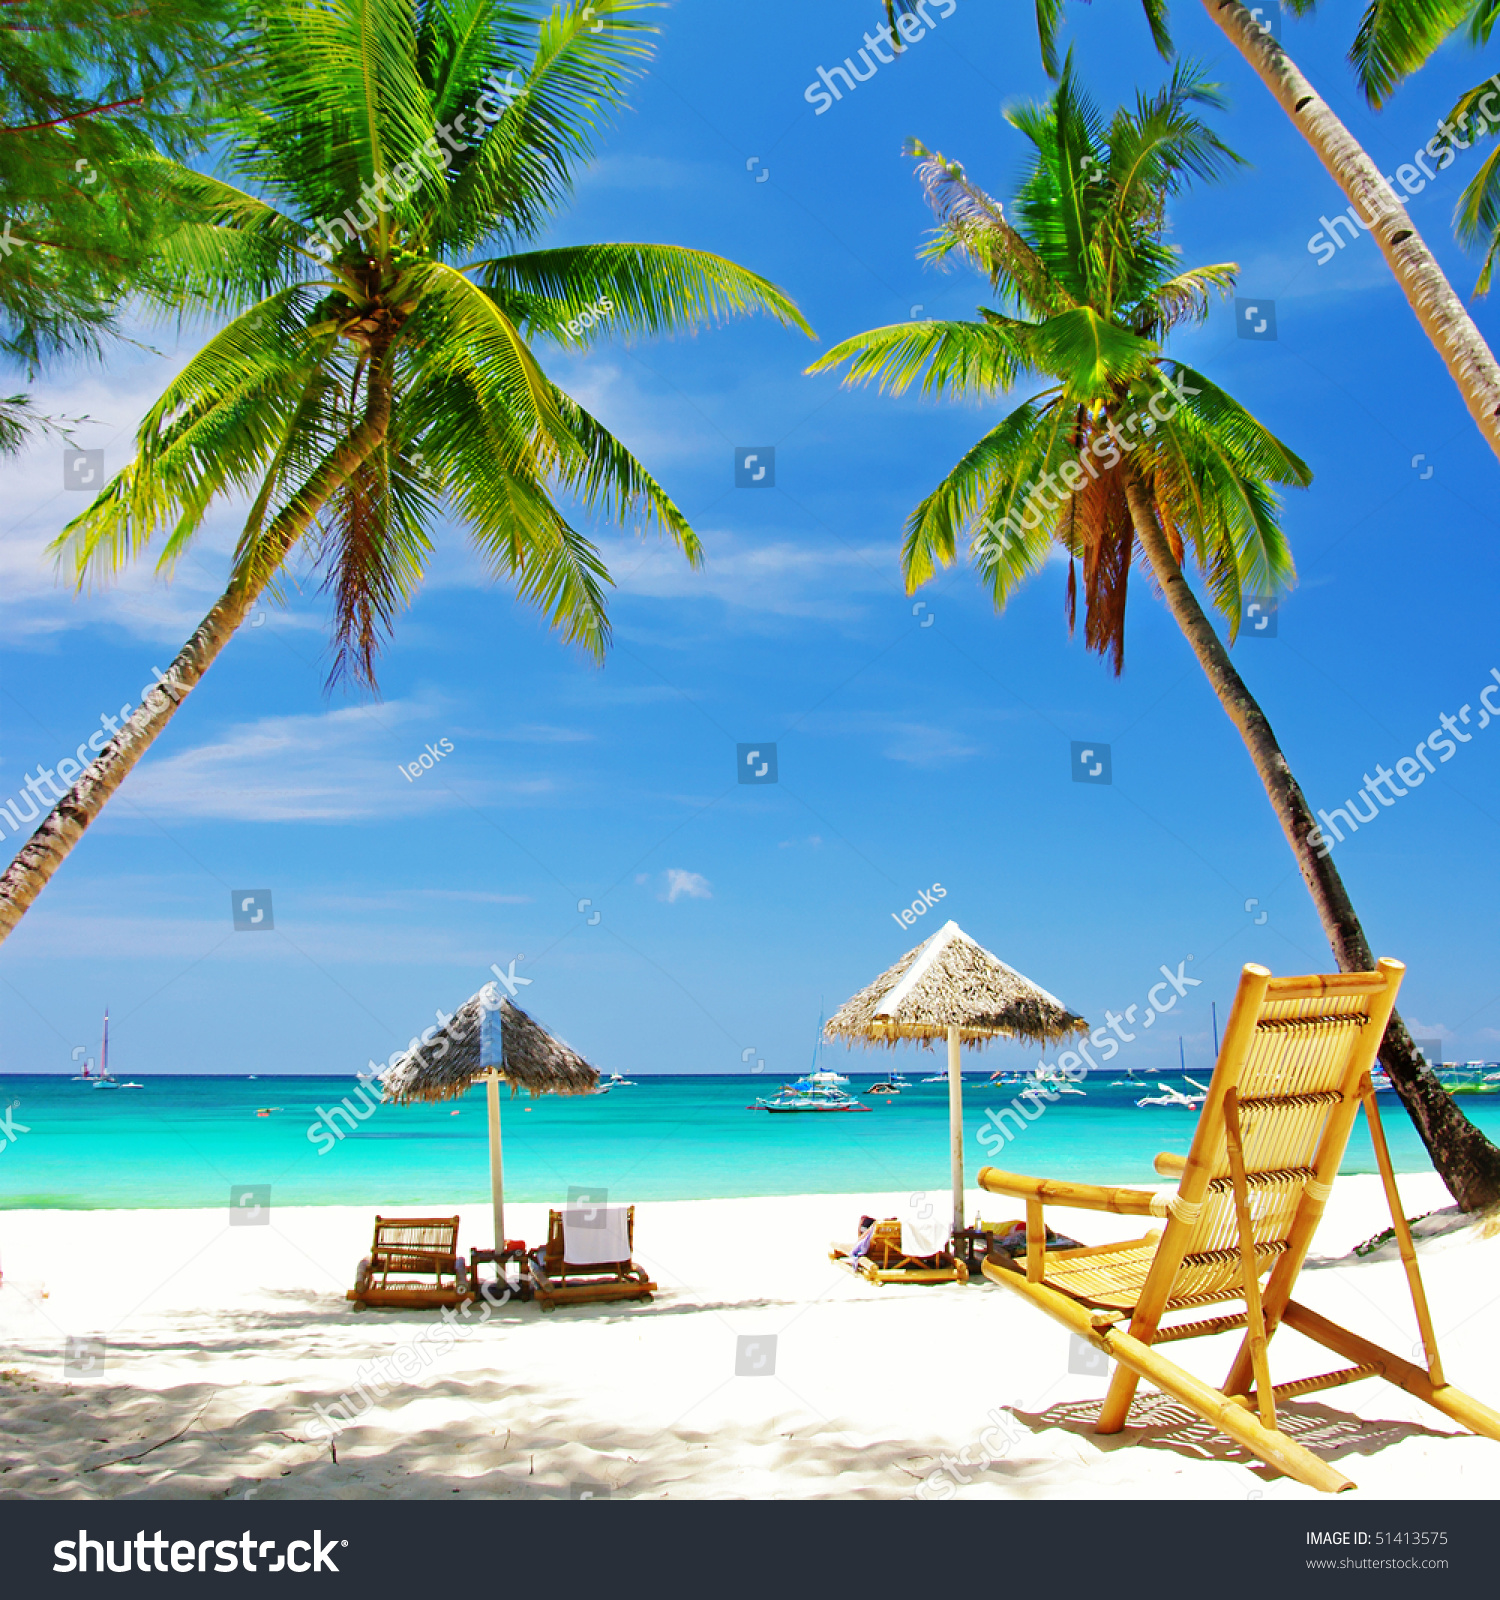 Tropical Holidays Stock Photo 51413575  Shutterstock